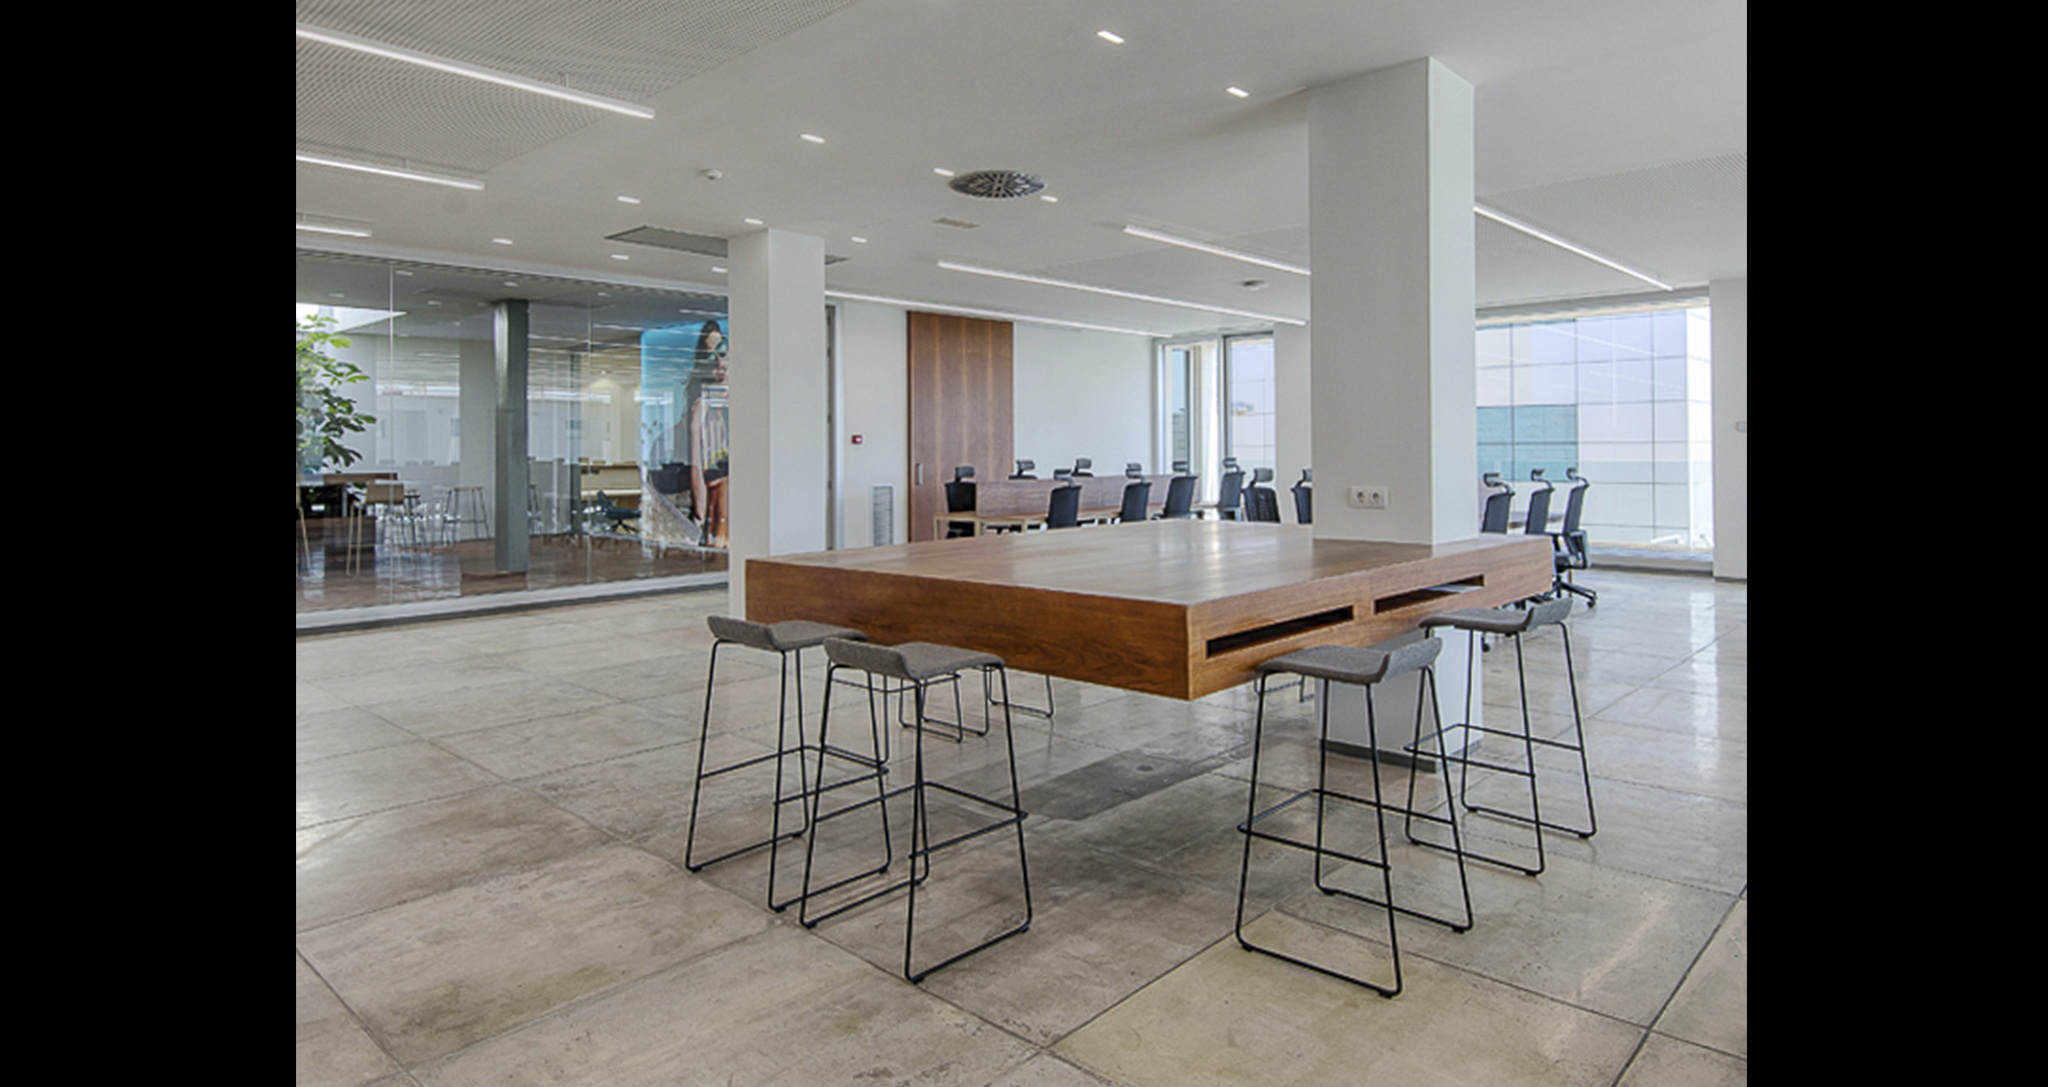 HAWKERS. Office remodeling project, project design by Rocamora Diseño y Arquitectura